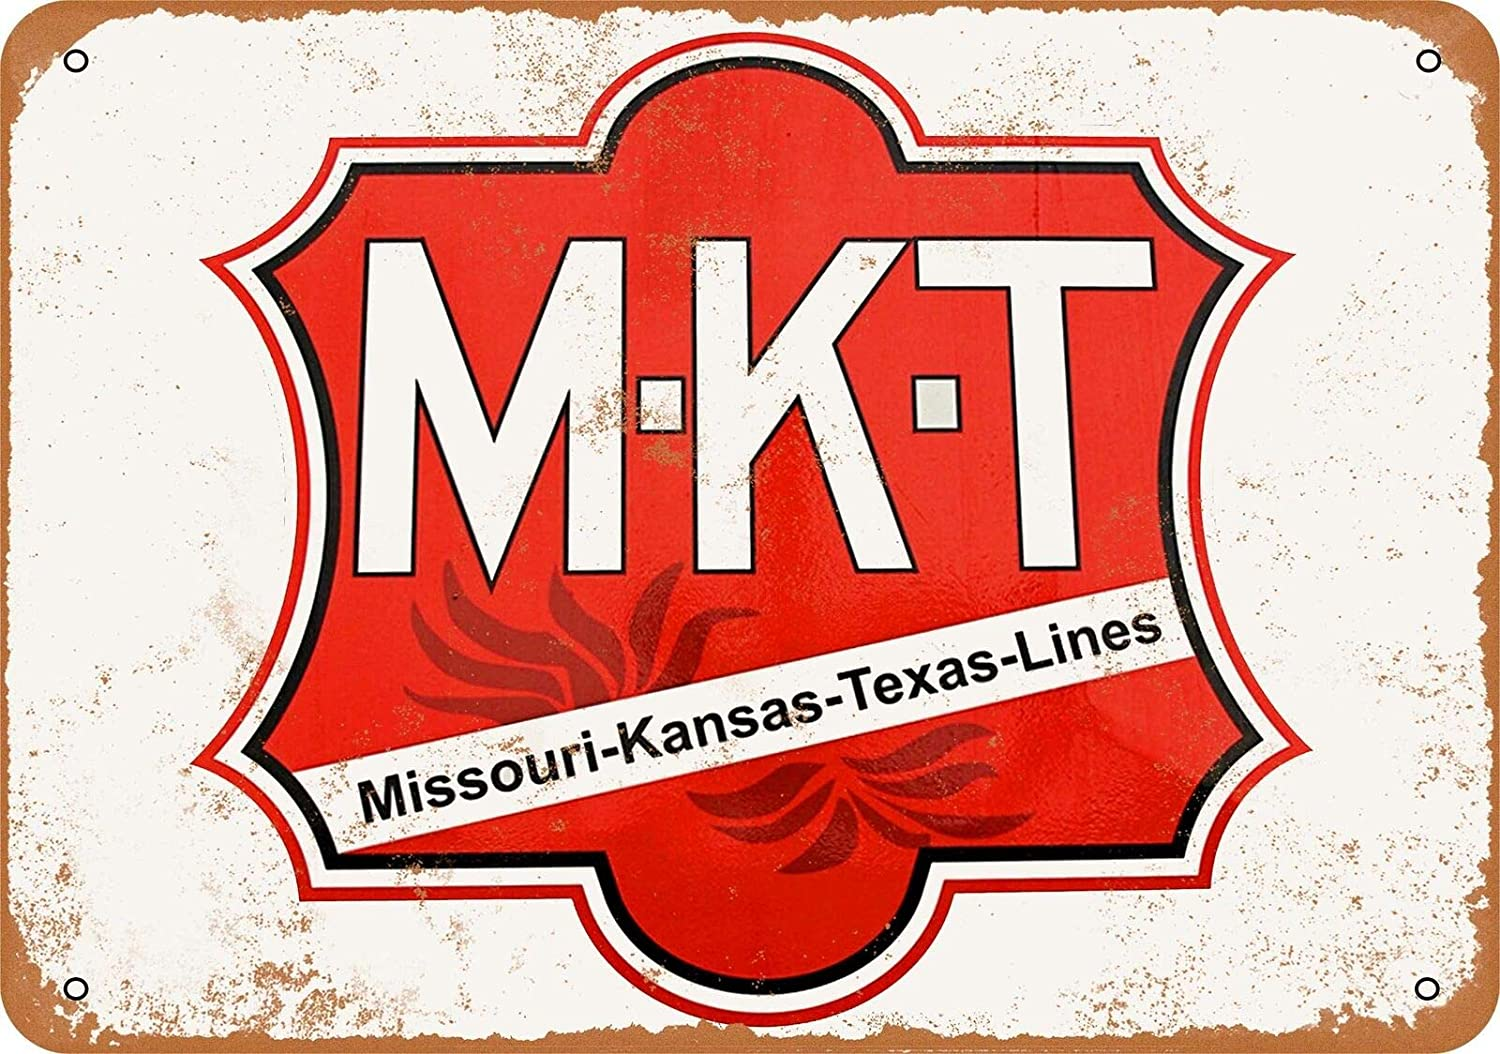 Katy M-K-T Railroad Vintage Aluminum Metal Signs Tin Plaques Wall Poster for Garage Man Cave Beer Cafee Bar Pub Club Shop Outdoor Home Decor 12x8